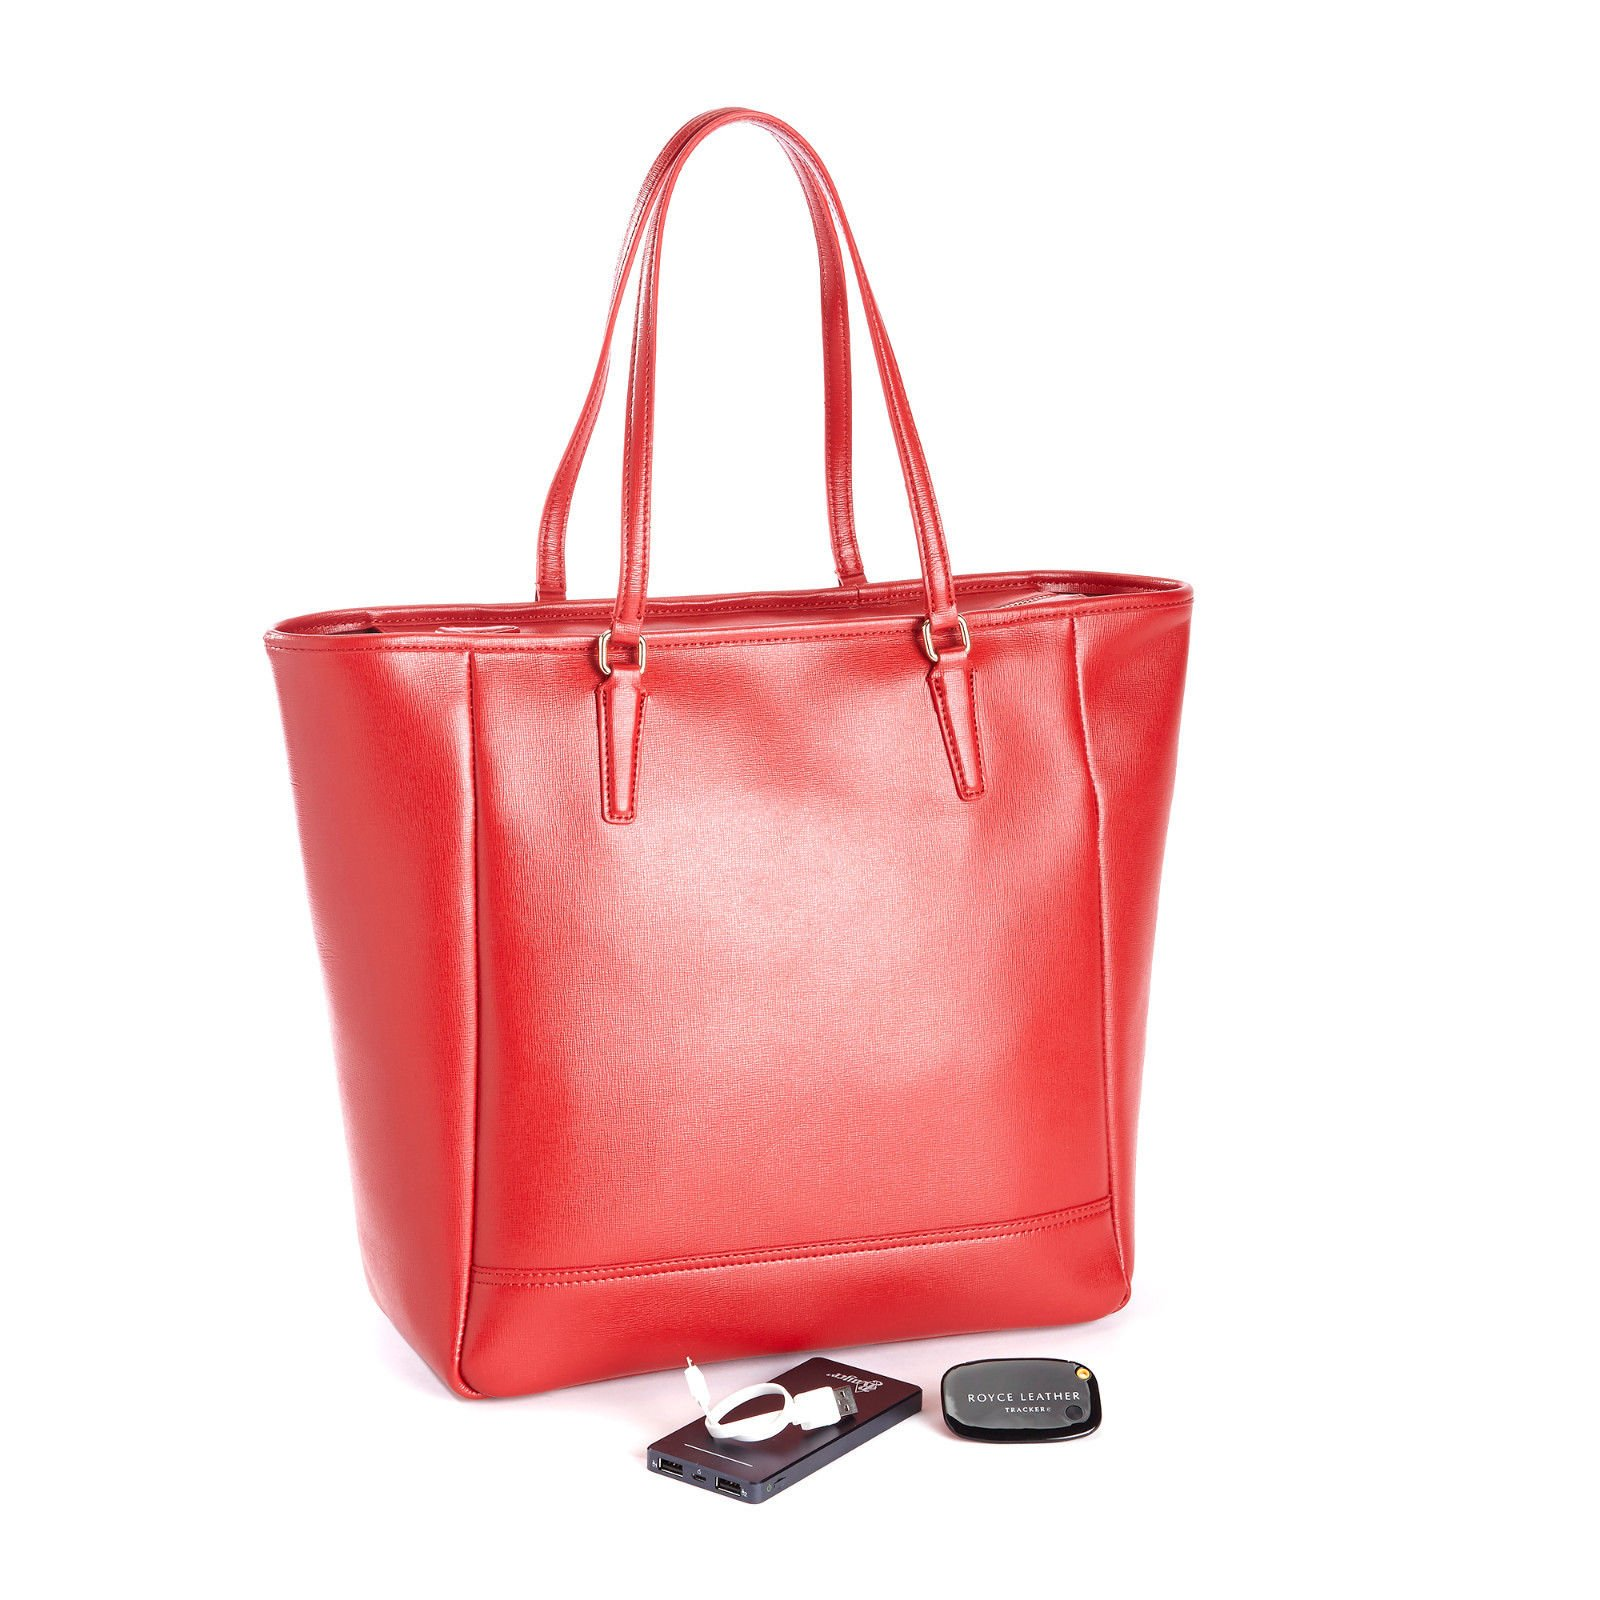 ROYCE Saffiano Leather RFID Blocking 24 Hour Tote Bag with Universal Bluetooth-Enabled Tracking Device for Locating Lost Bags and Portable Battery Power Bank - Red